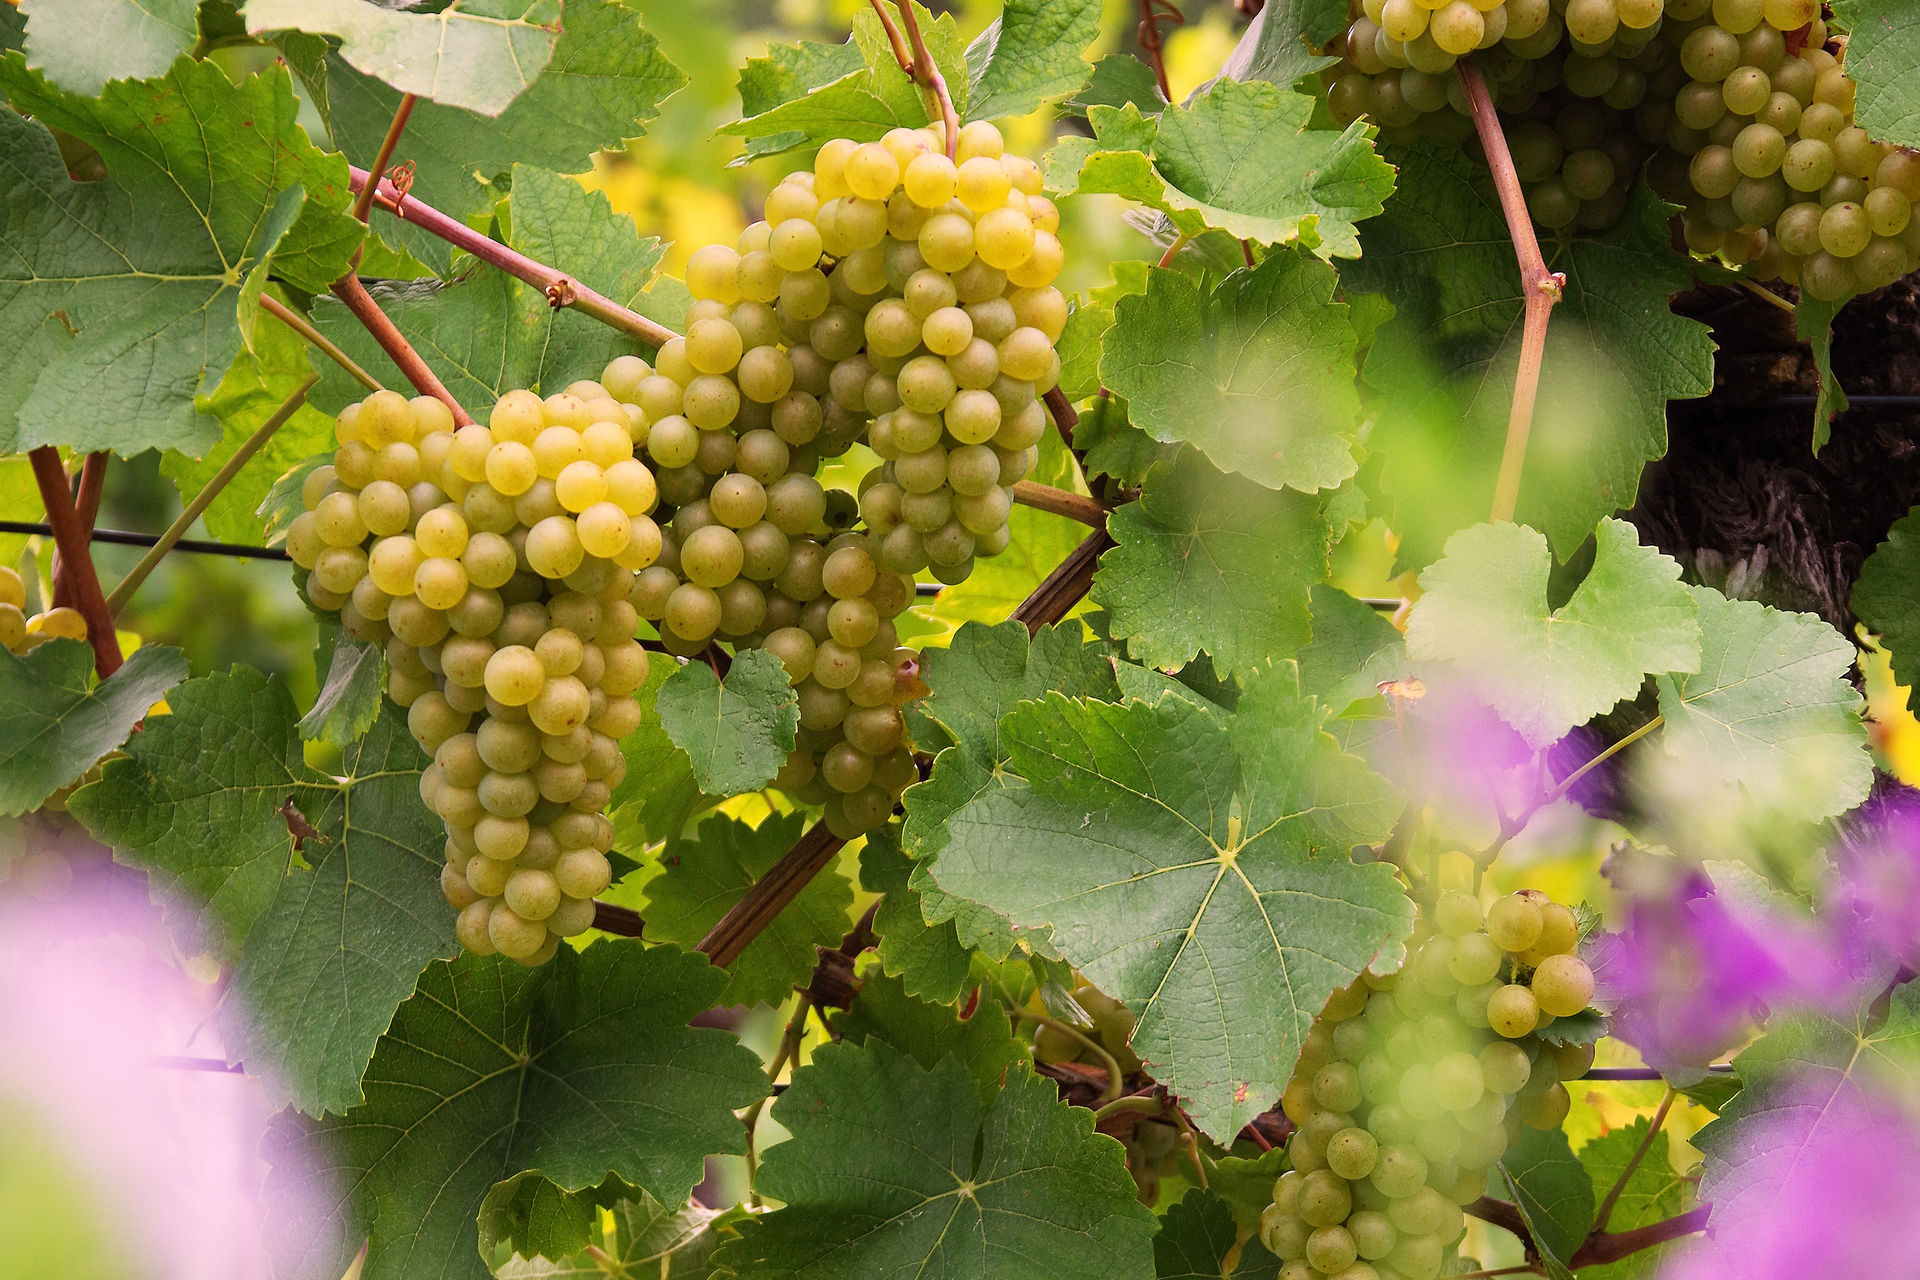 The quality of the grapes in Austria leads to the expectation of harmonious and balanced 2019 wines; © Austrian Wine/Marcus Wiesner